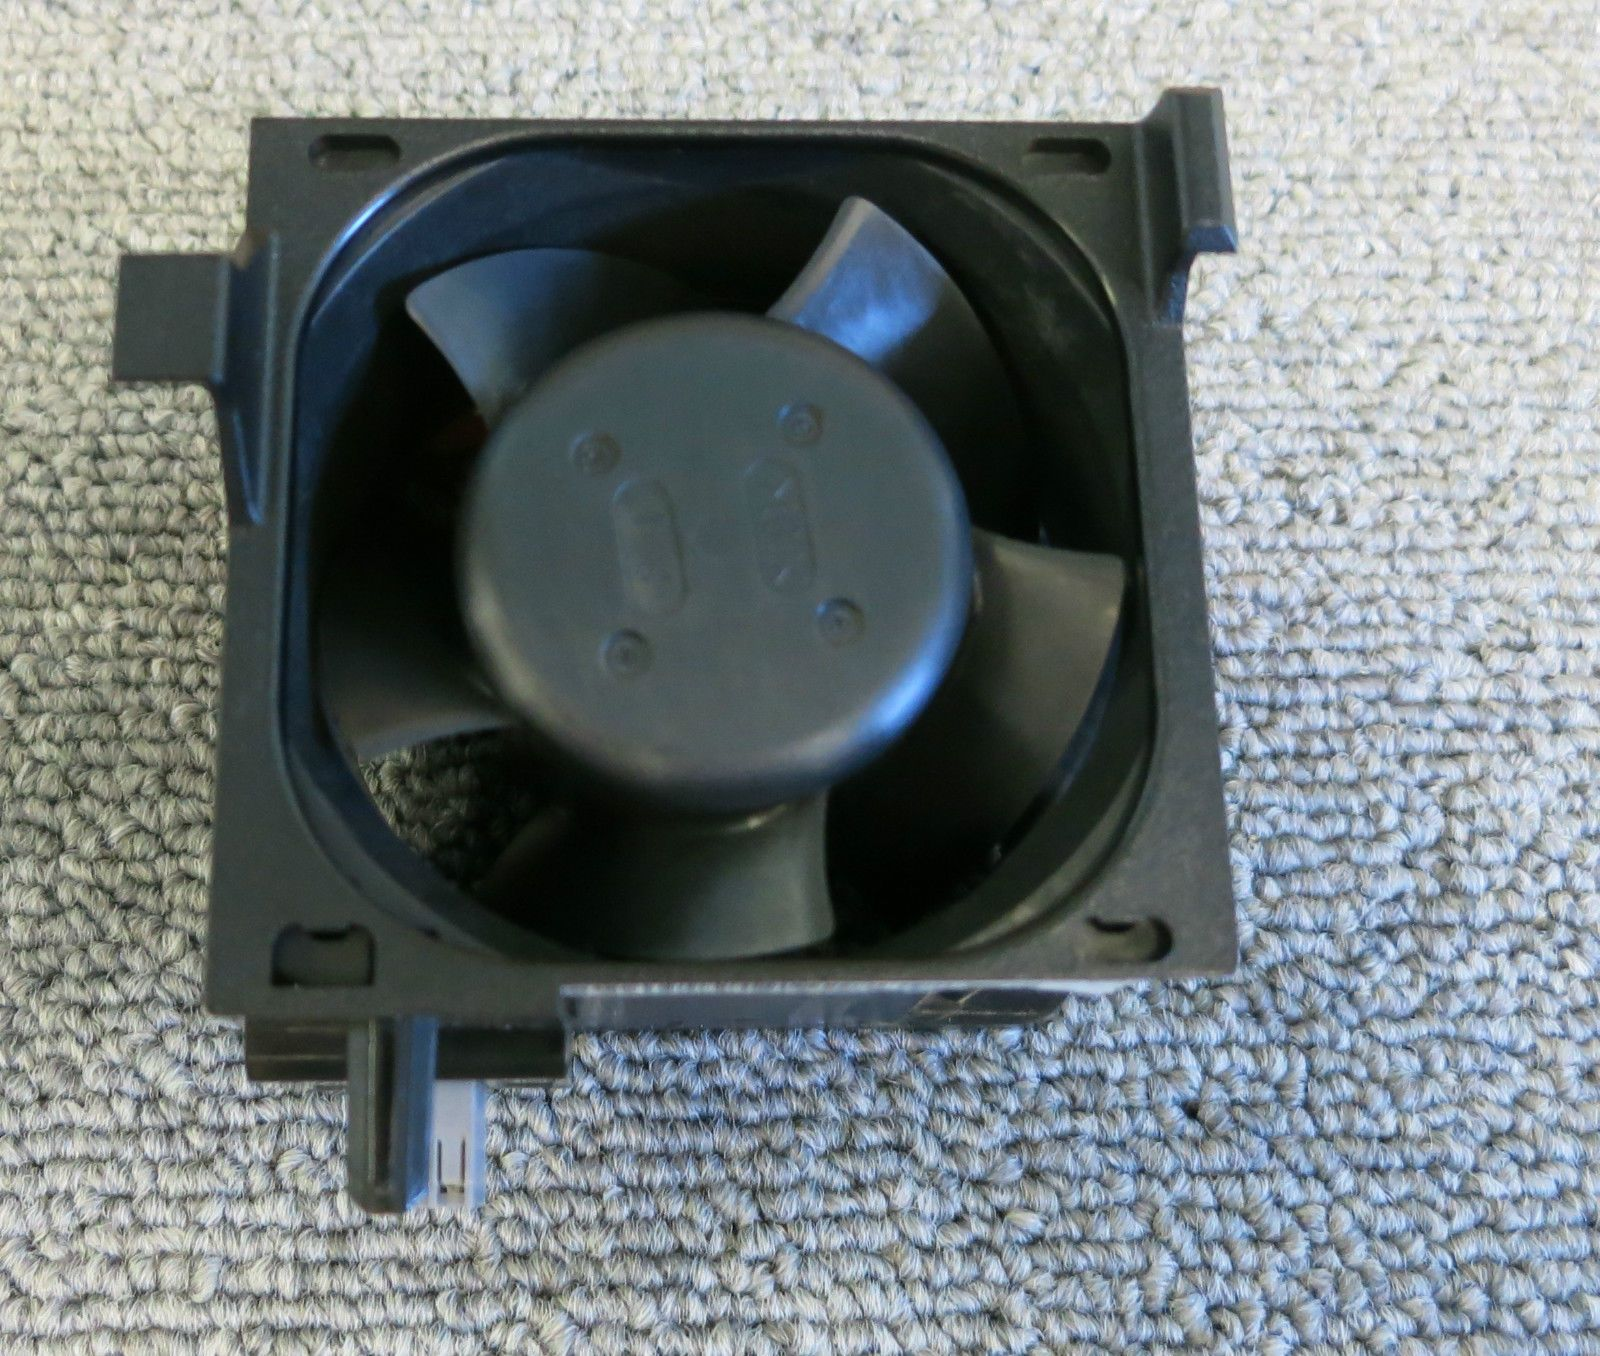 Dell Nmb Mat 0yw880 Yw880 2415kl Poweredge 2950 Cooling